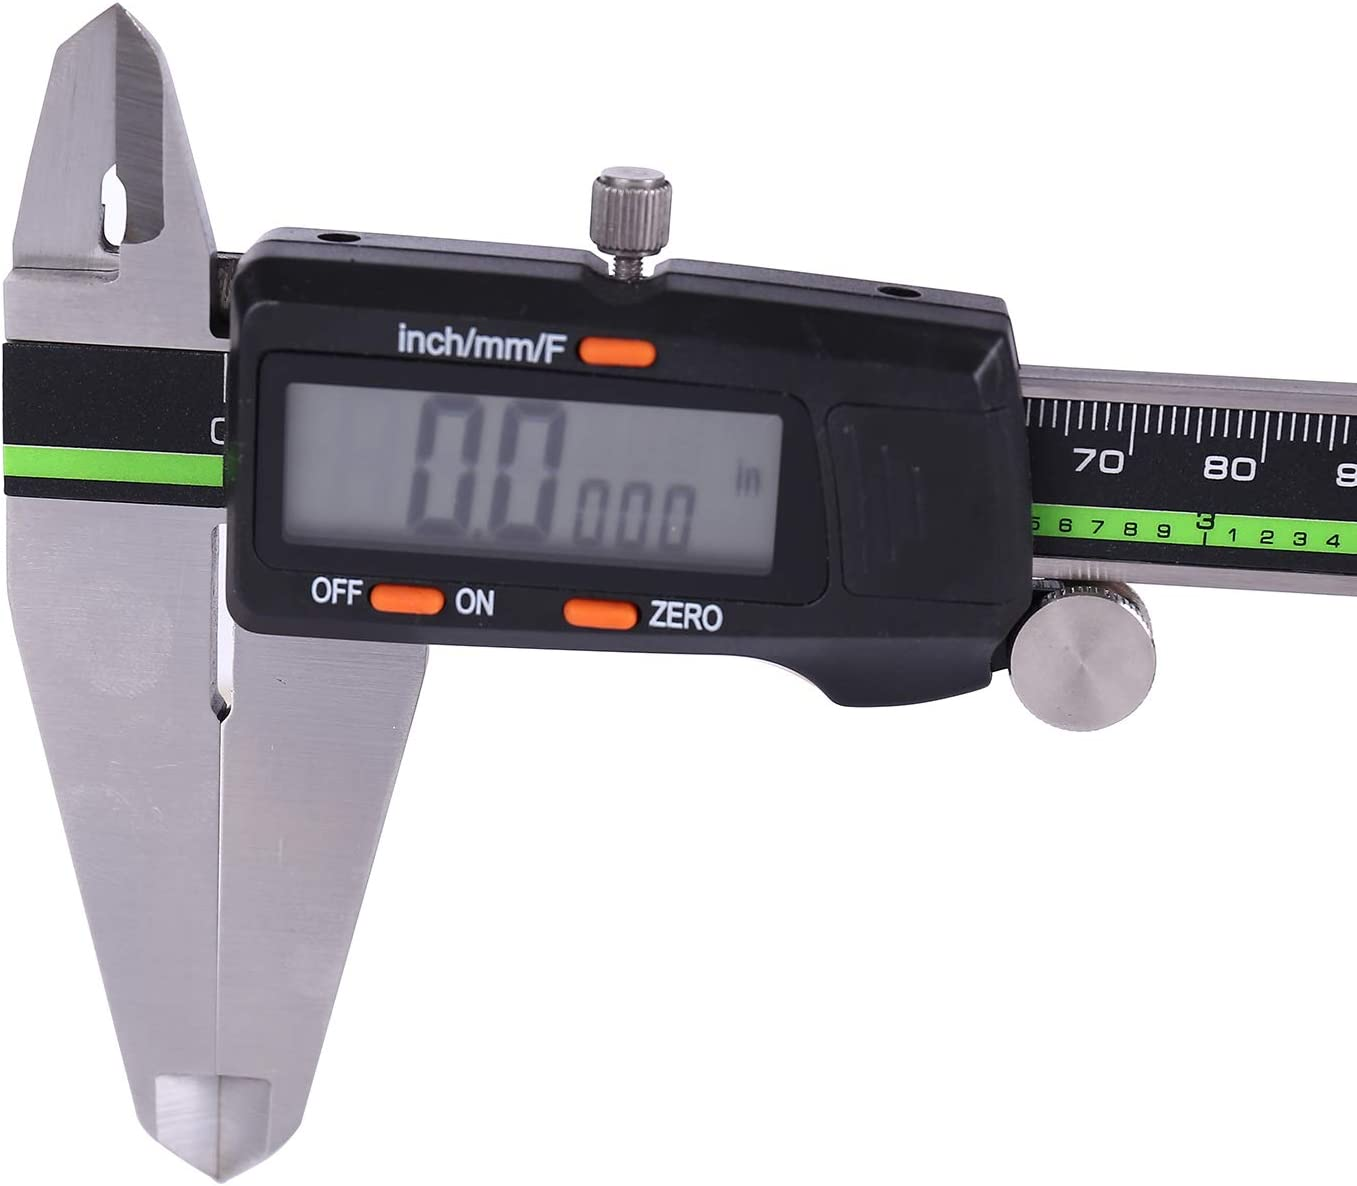 Digital Caliper Stainless Steel with Large LCD Screen 12 Inch Millimeter Fractions Conversion Sattiyrch Electronic Vernier Caliper Measuring Tool 12 inch new LCD